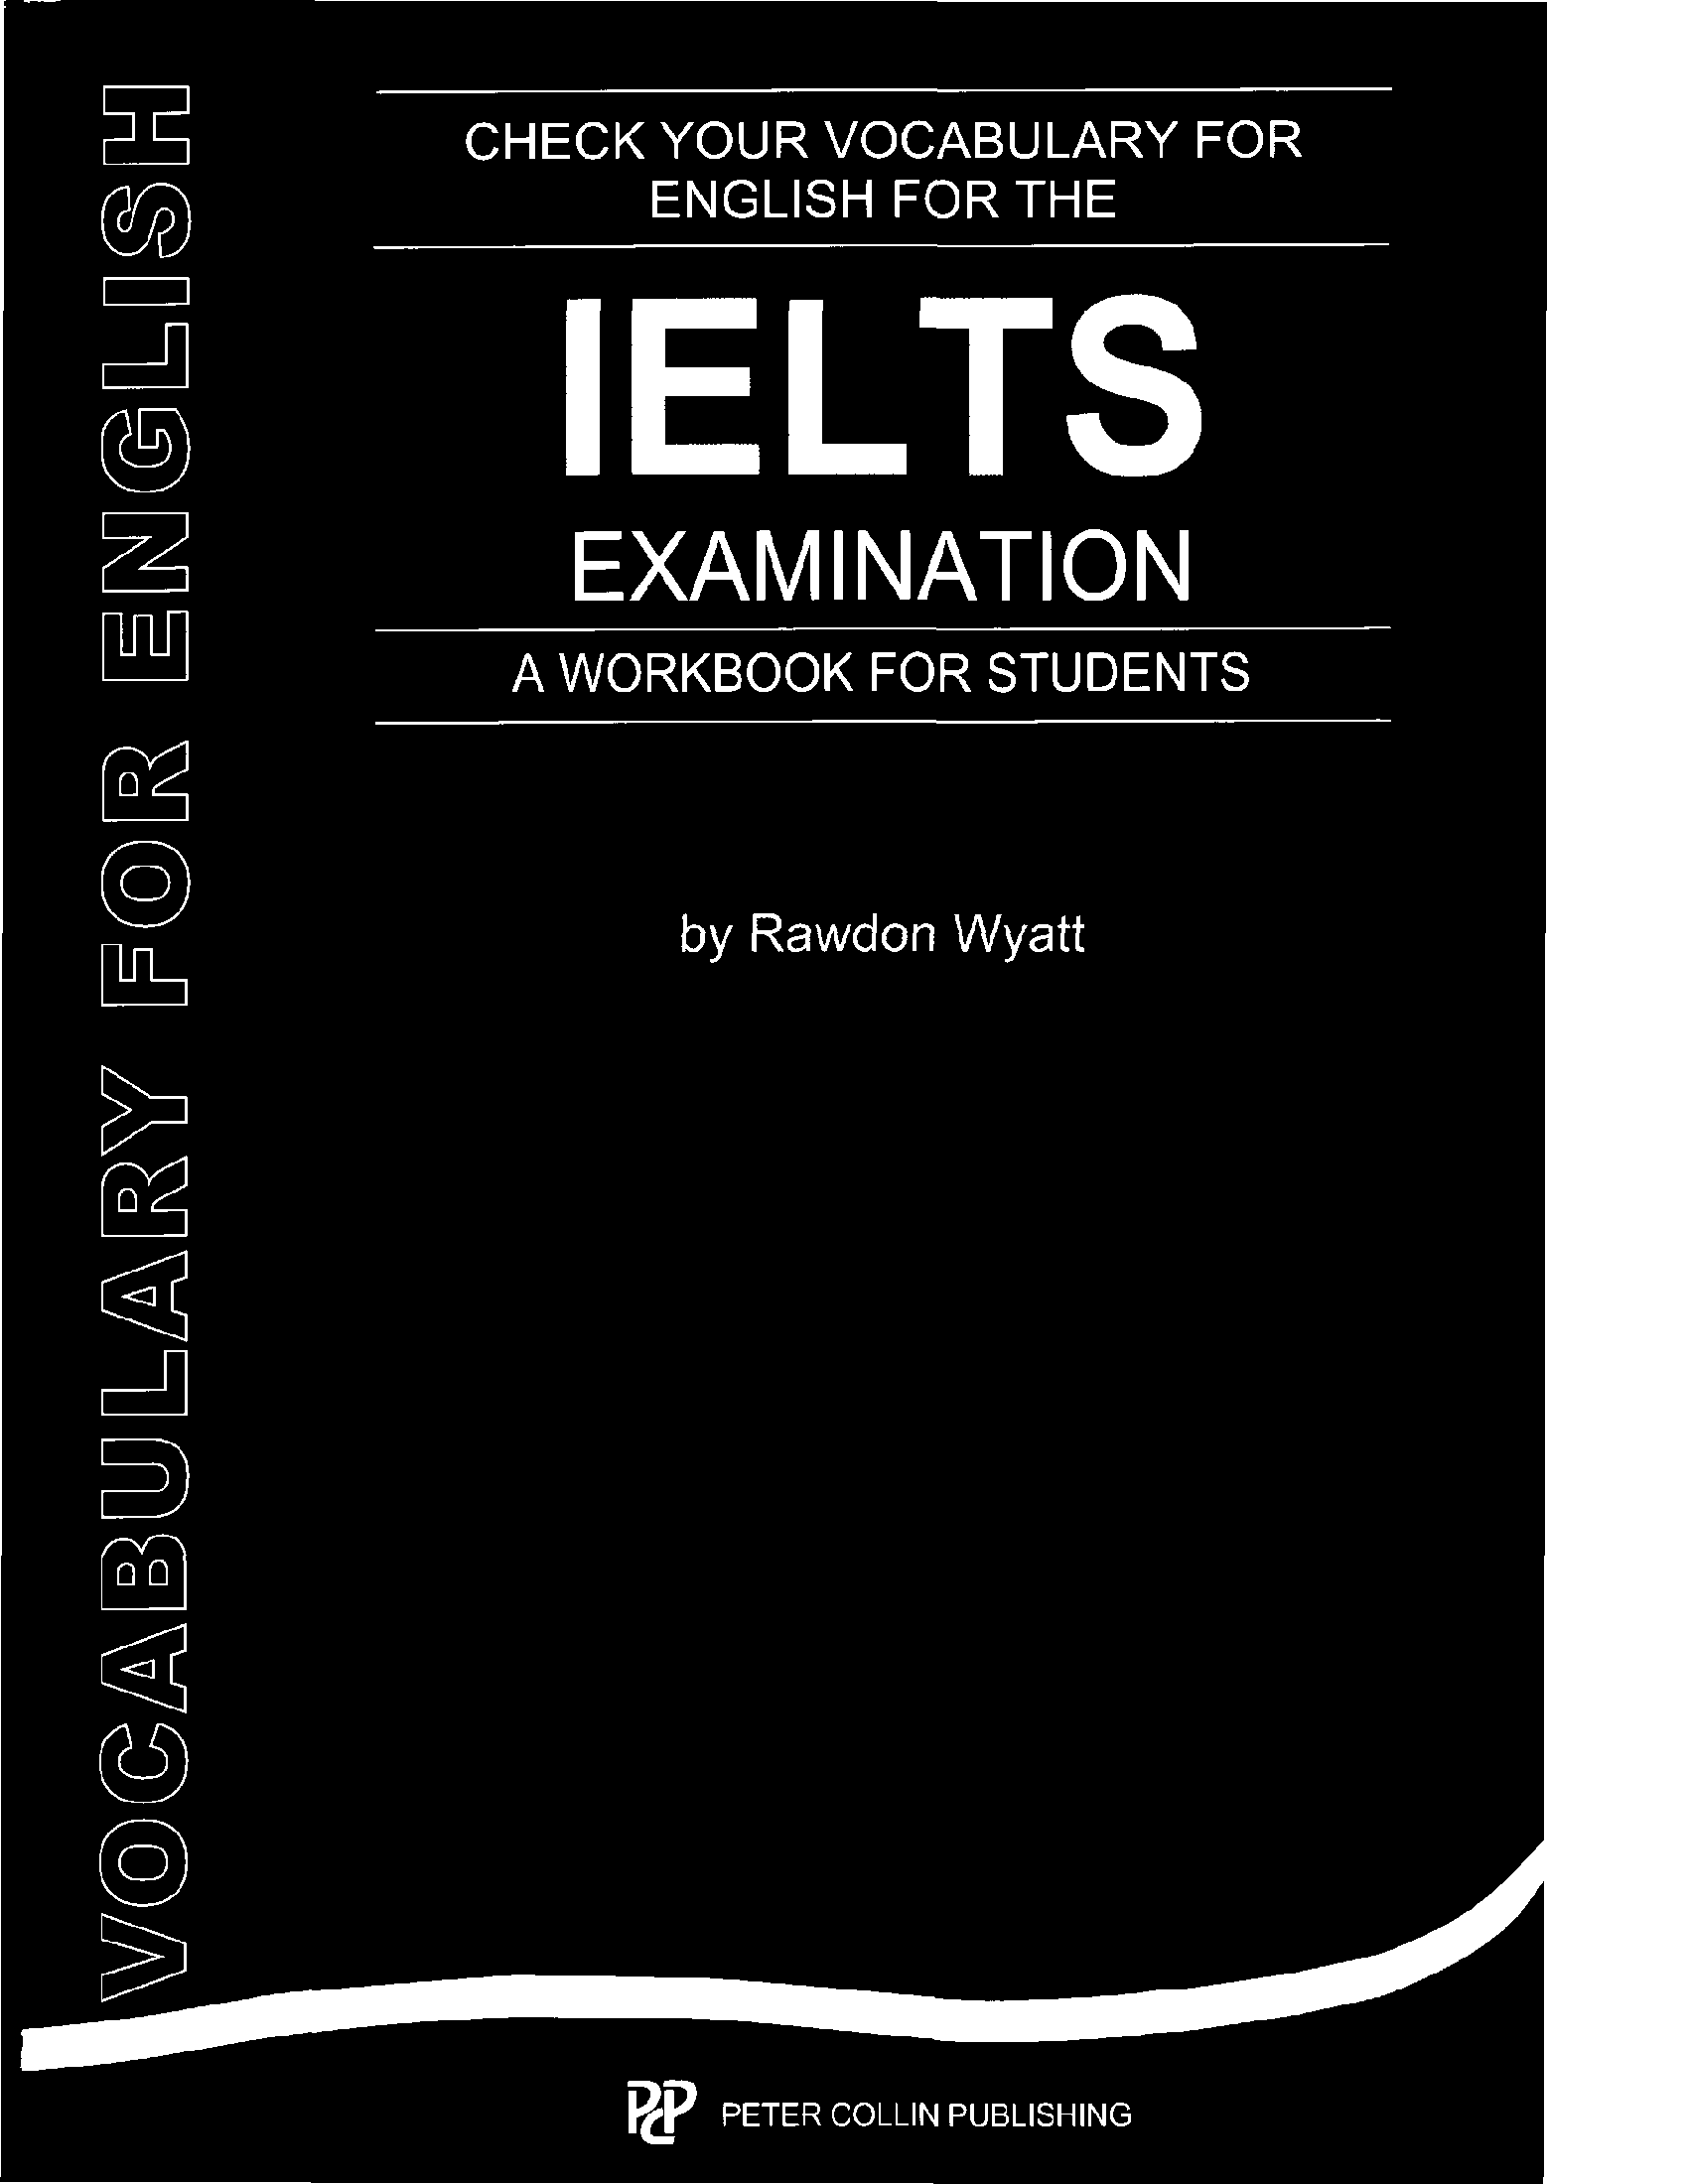 Check Your Vocabulary for English for the Ielts Examination Free PDF